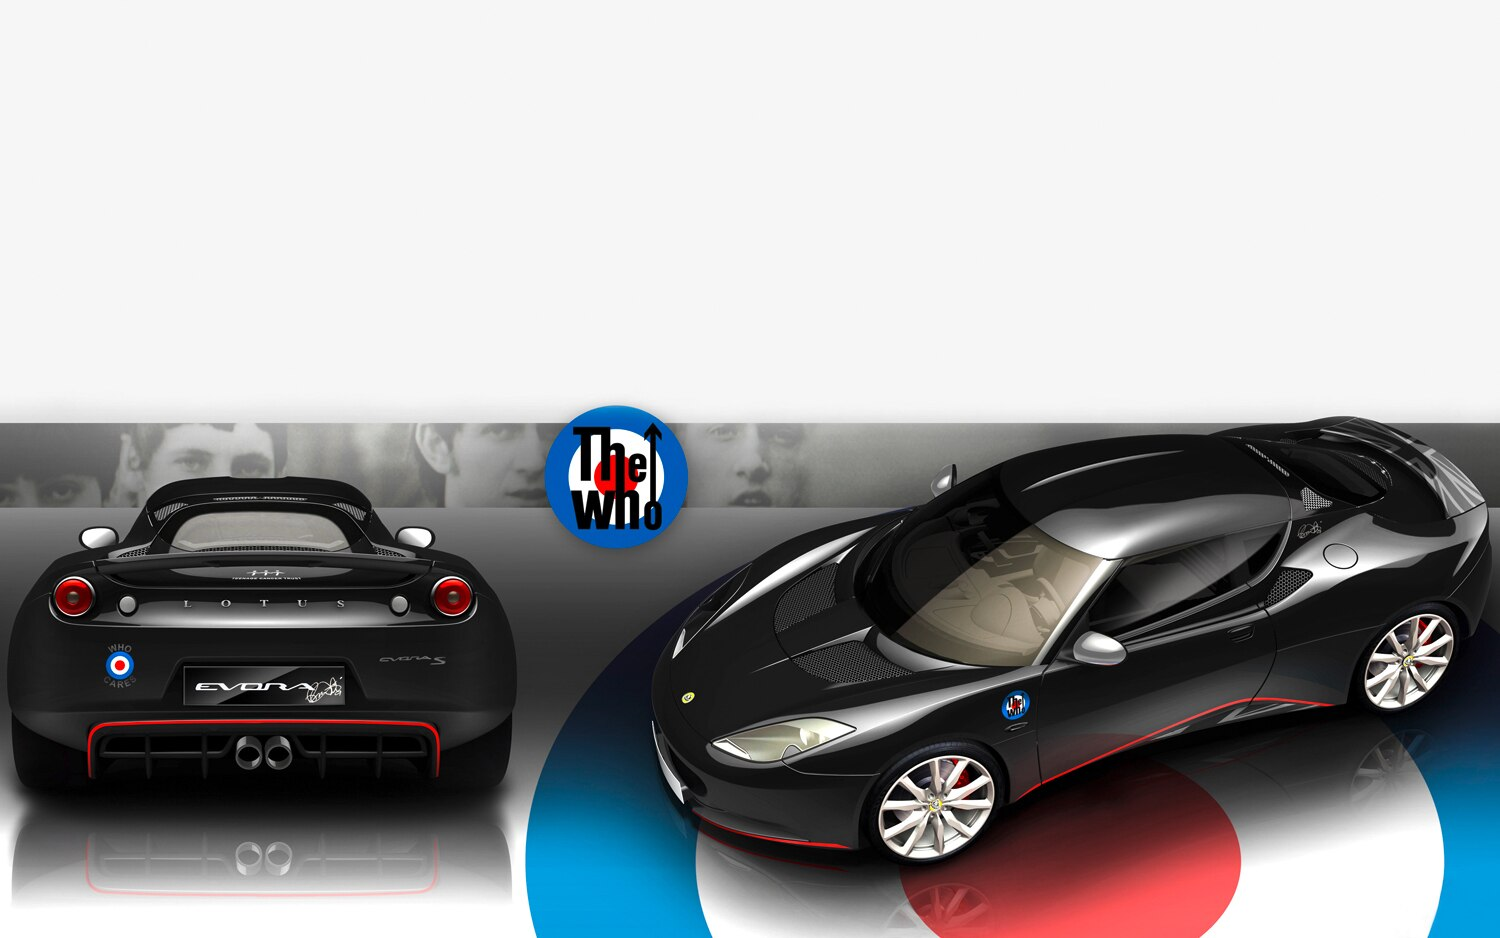 2012 Lotus Evora S By The Who Exterior1